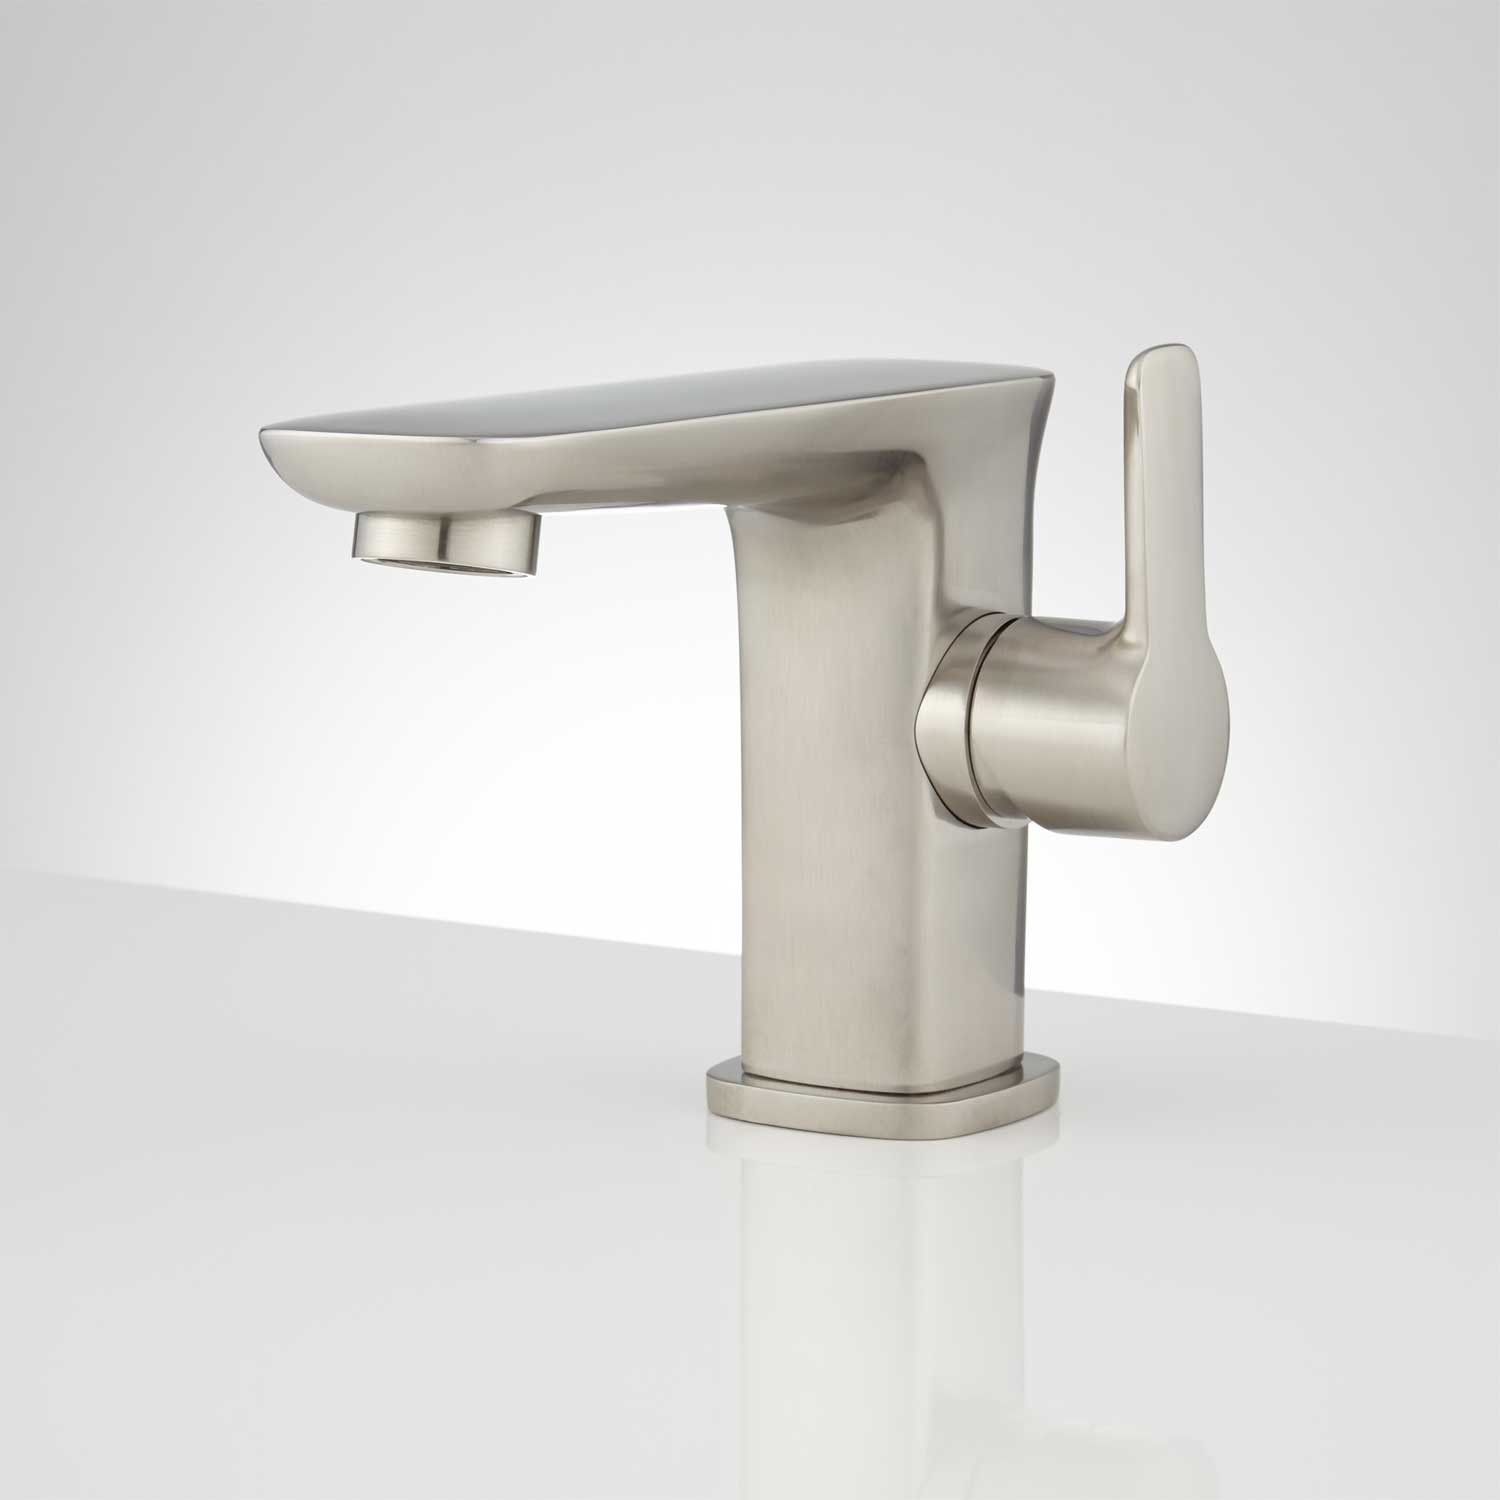 a to design choose hole yliving blog sink toobi modern necessities single faucet bathroom how from kohleryliving